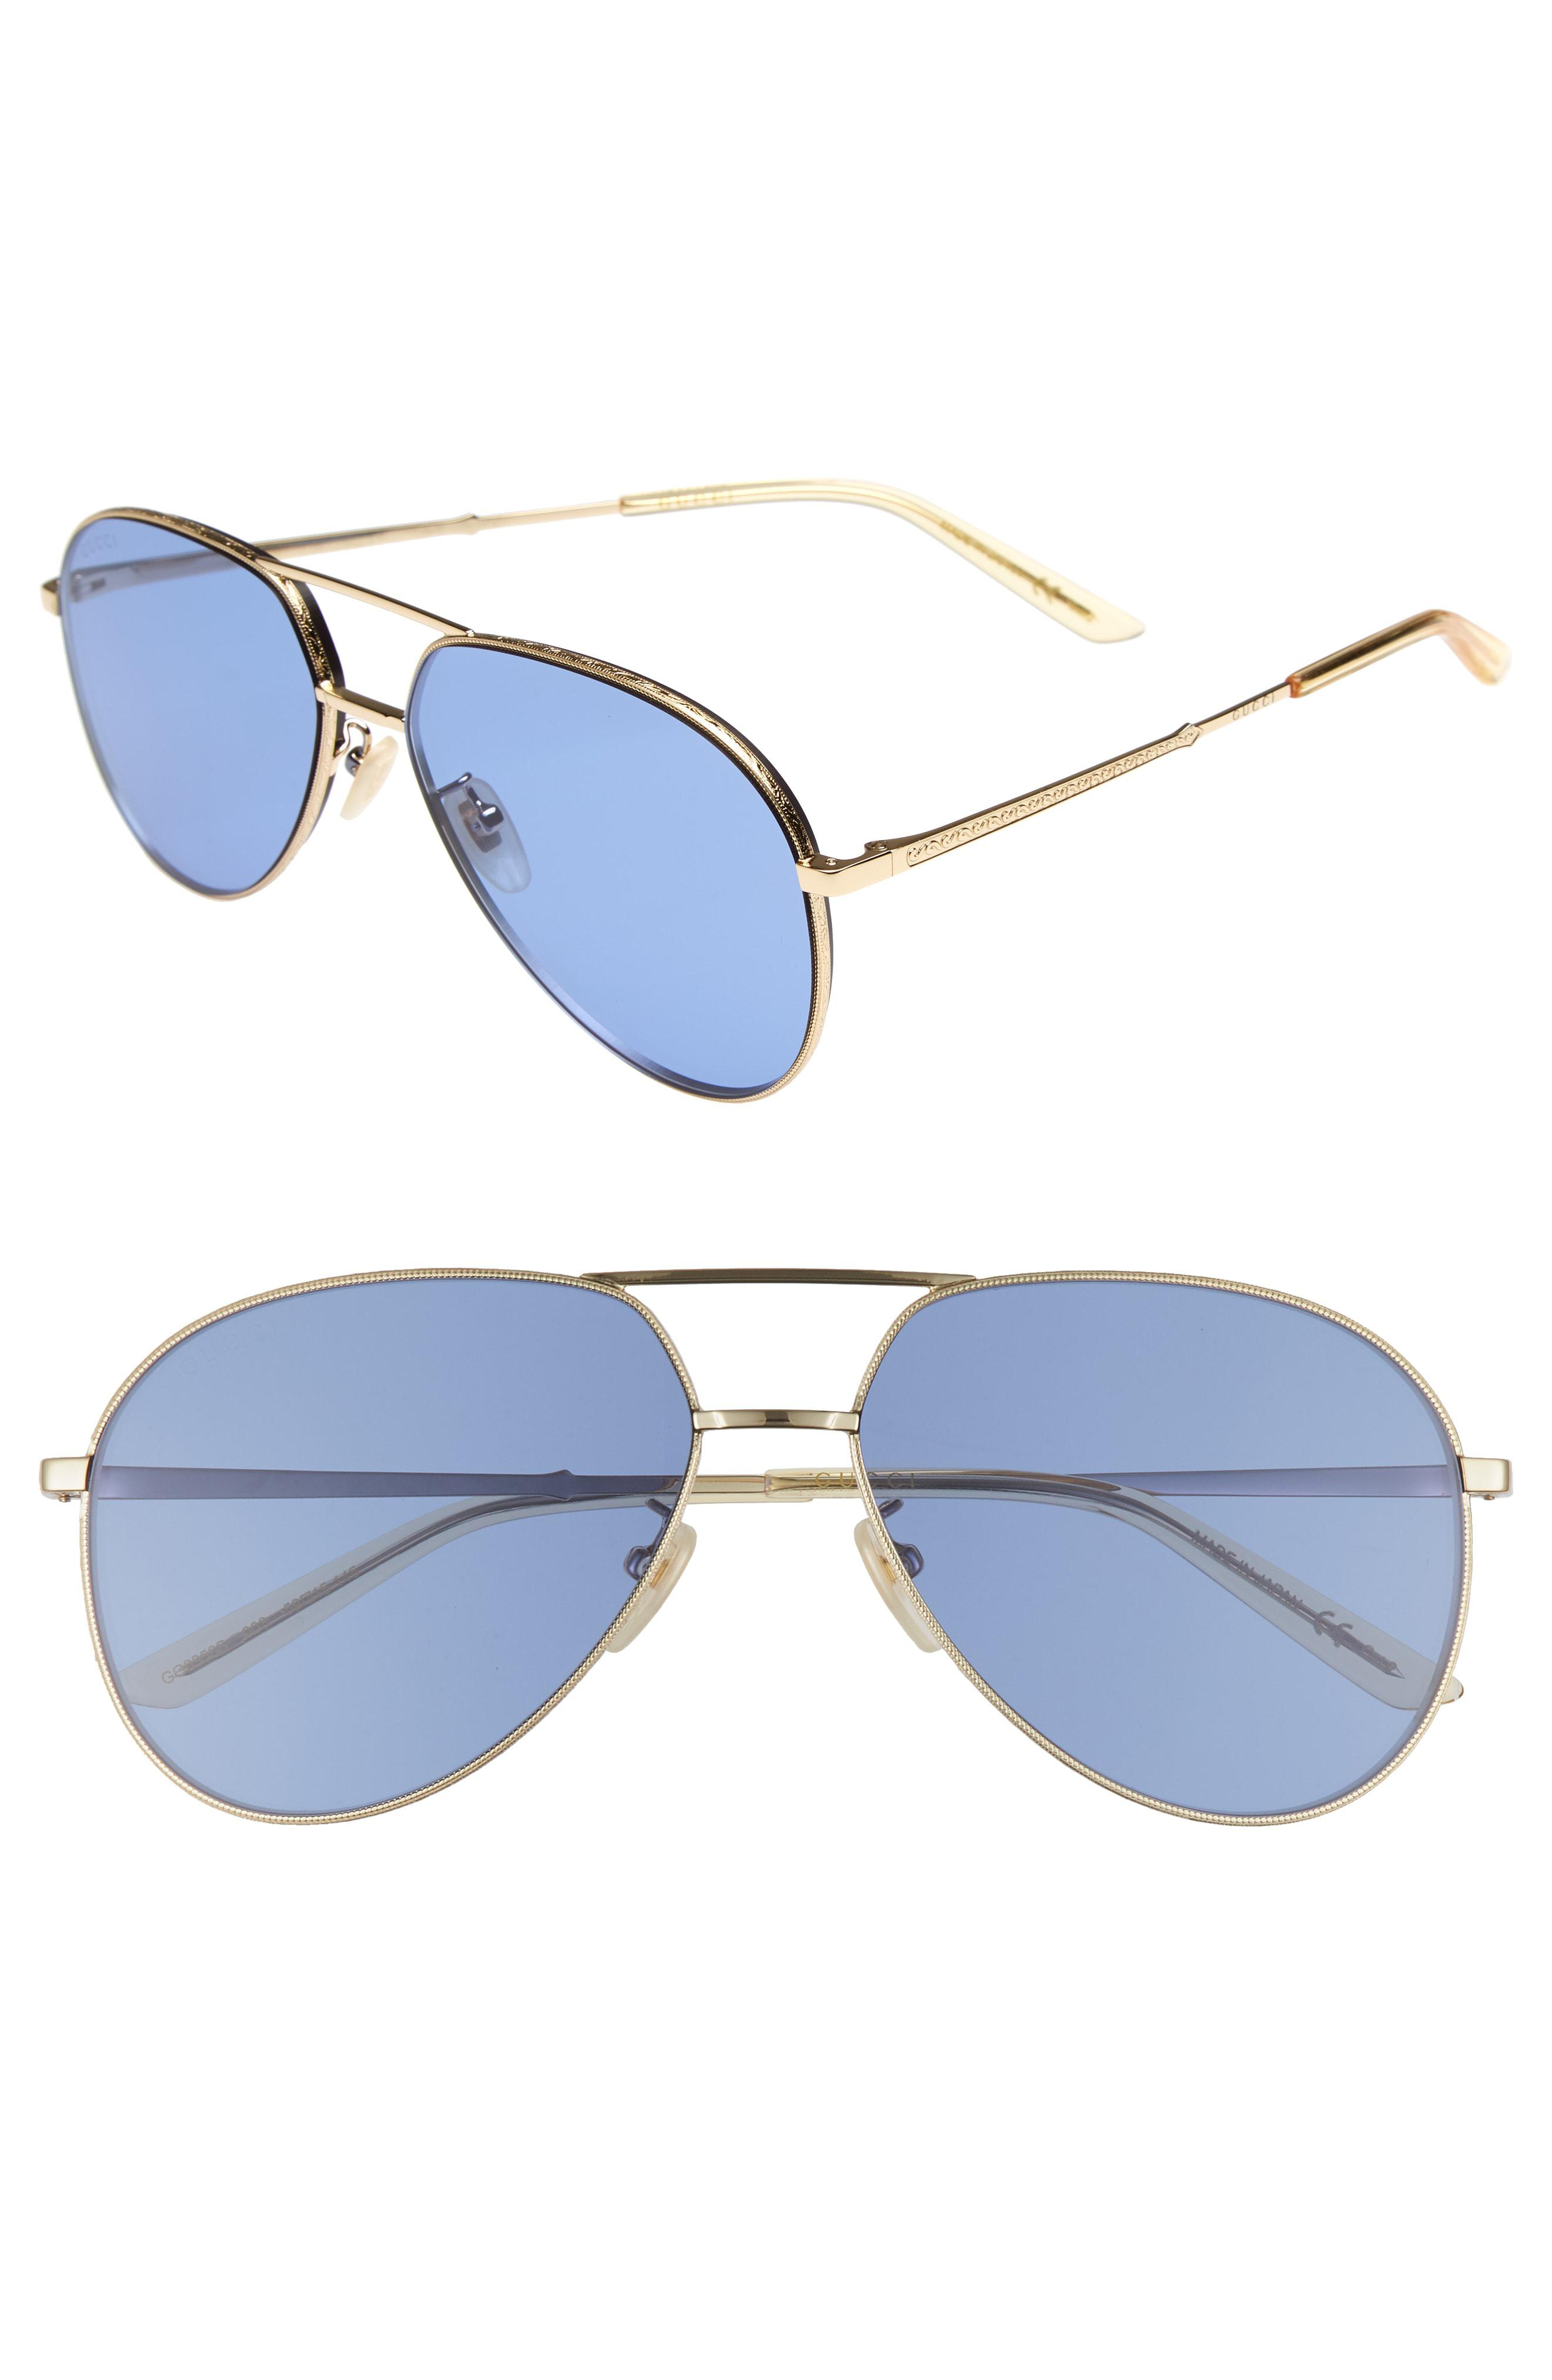 75d89772395 Lyst - Gucci 59mm Aviator Sunglasses - in Blue for Men